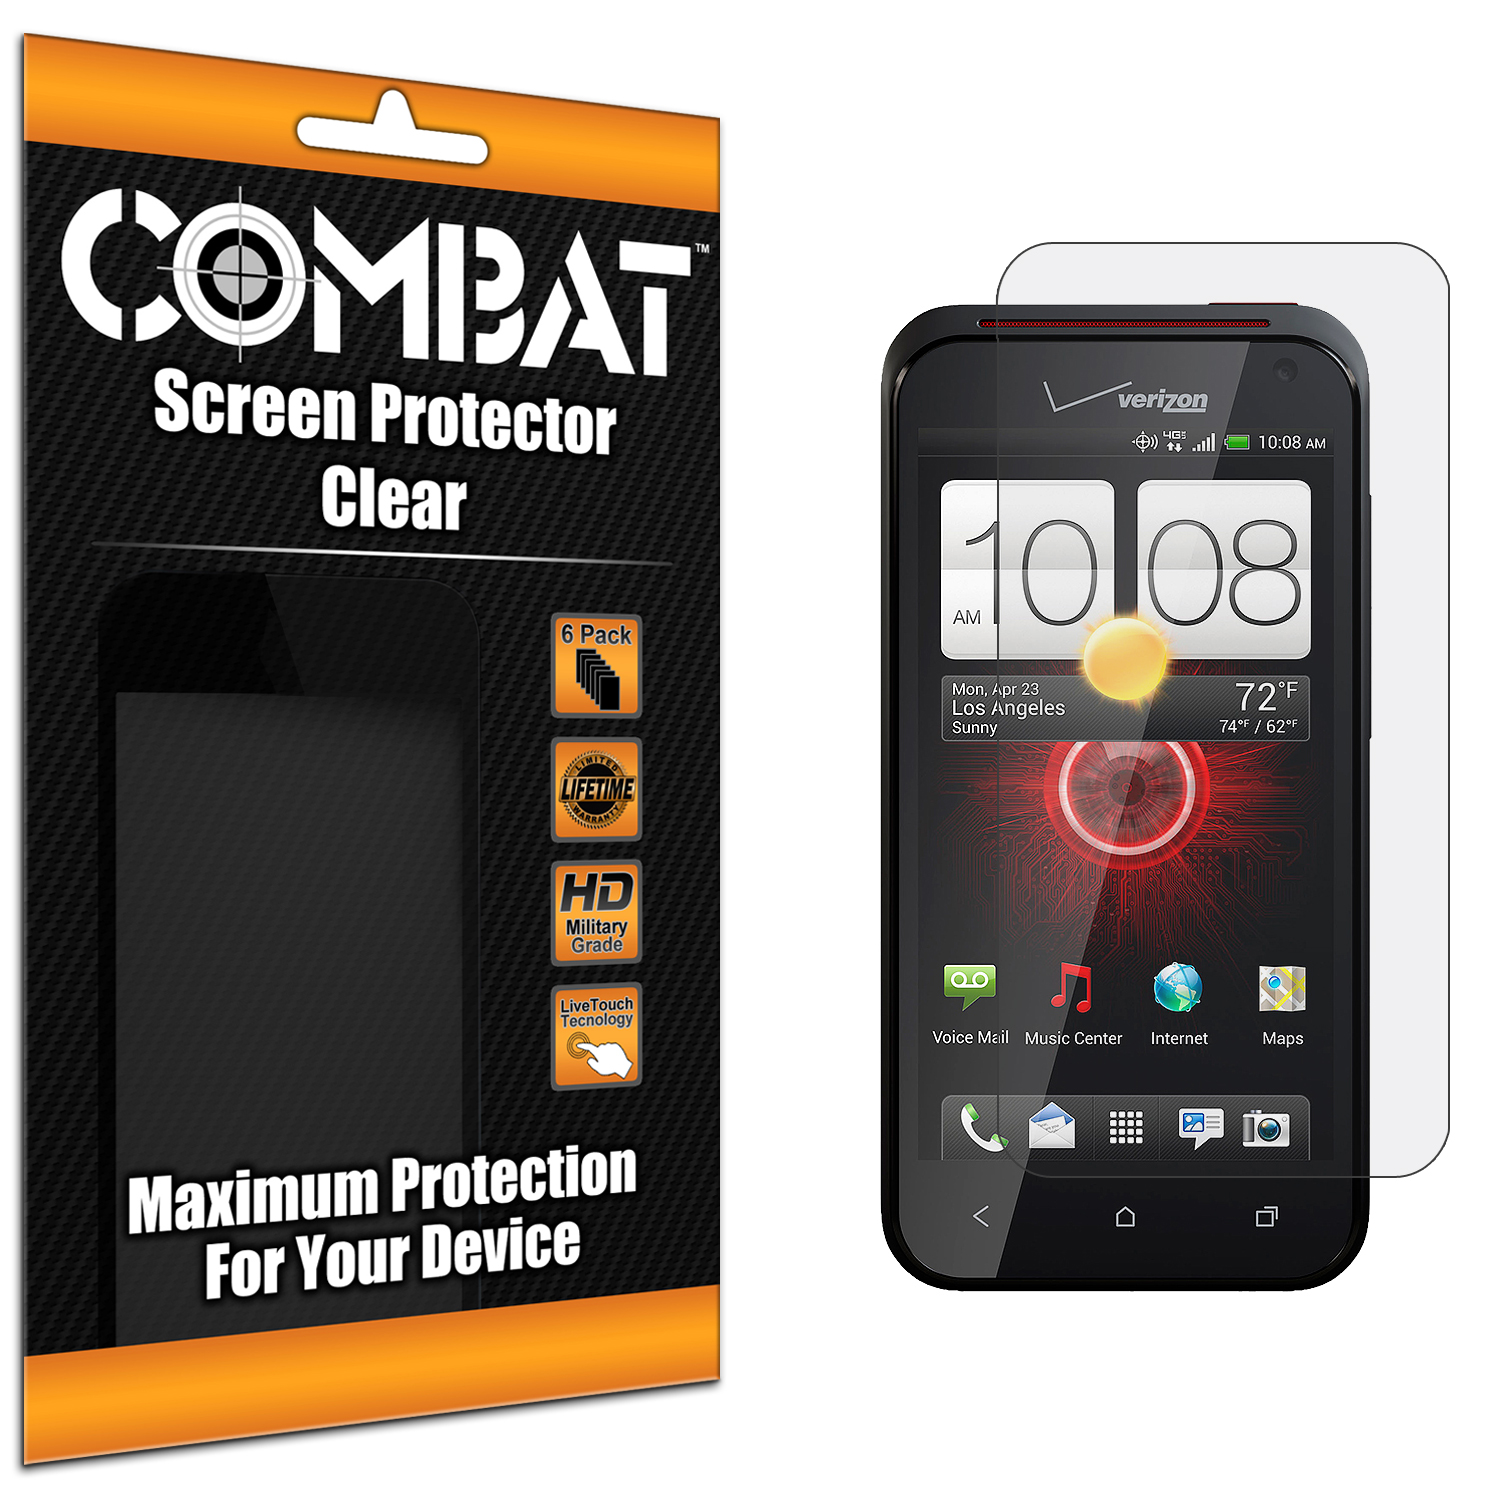 HTC Droid Incredible 4G LTE 6410 Combat 6 Pack HD Clear Screen Protector